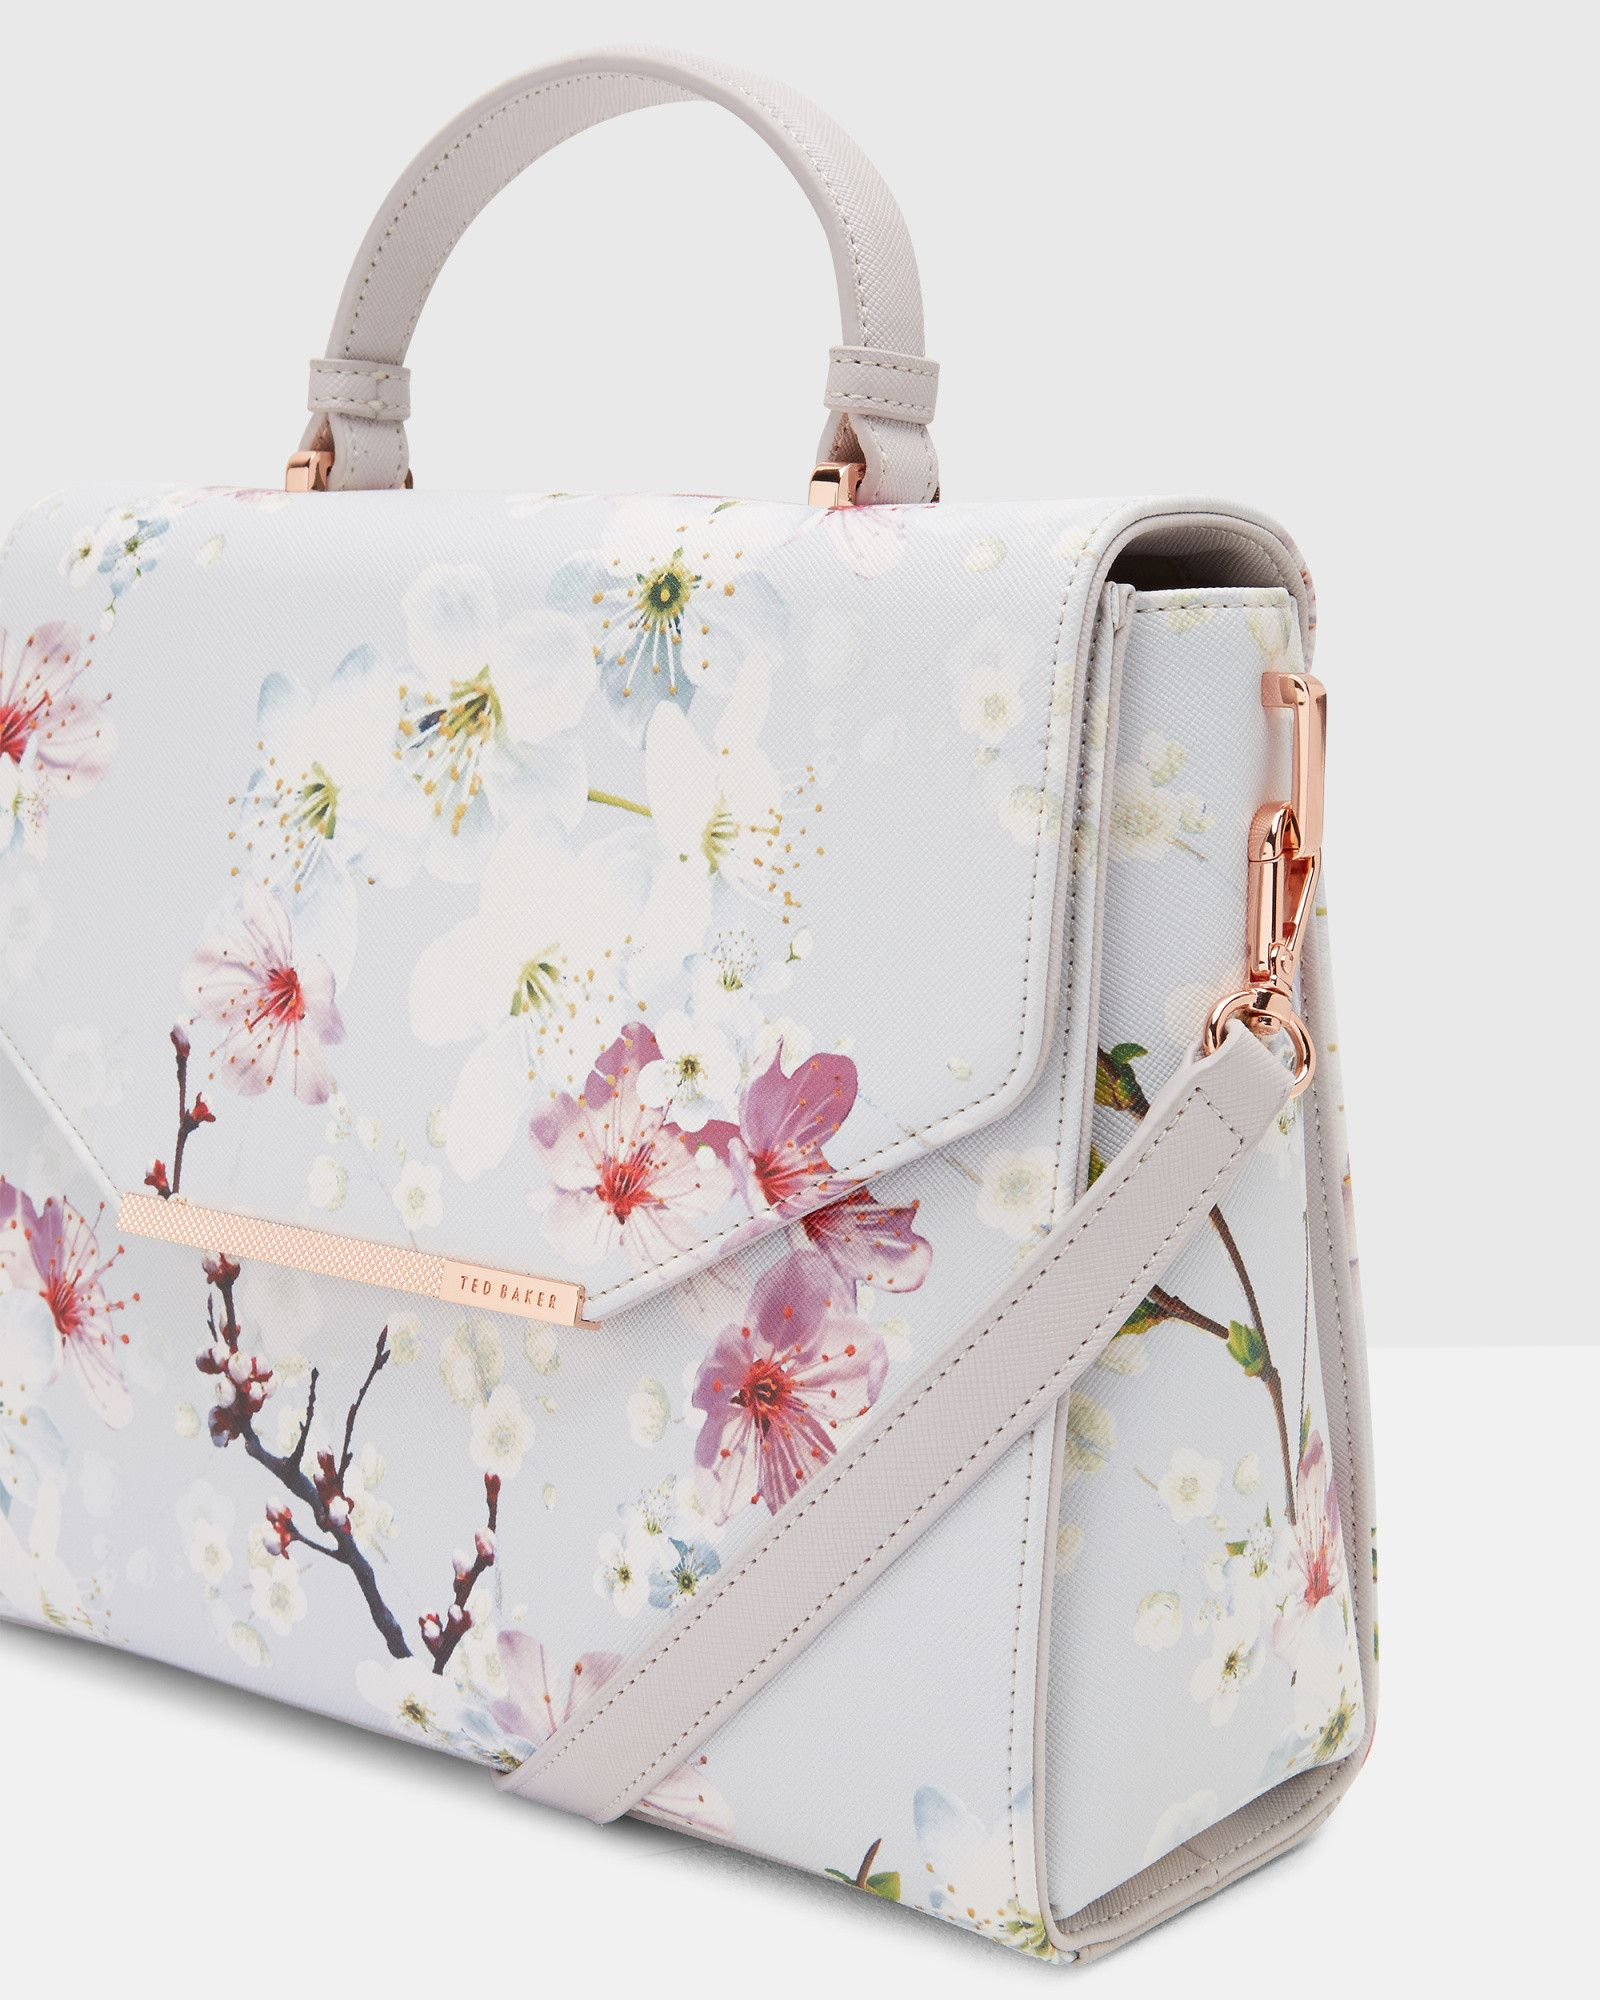 Oriental Blossom Tote Bag Light Grey Bags Ted Baker Uk Sac